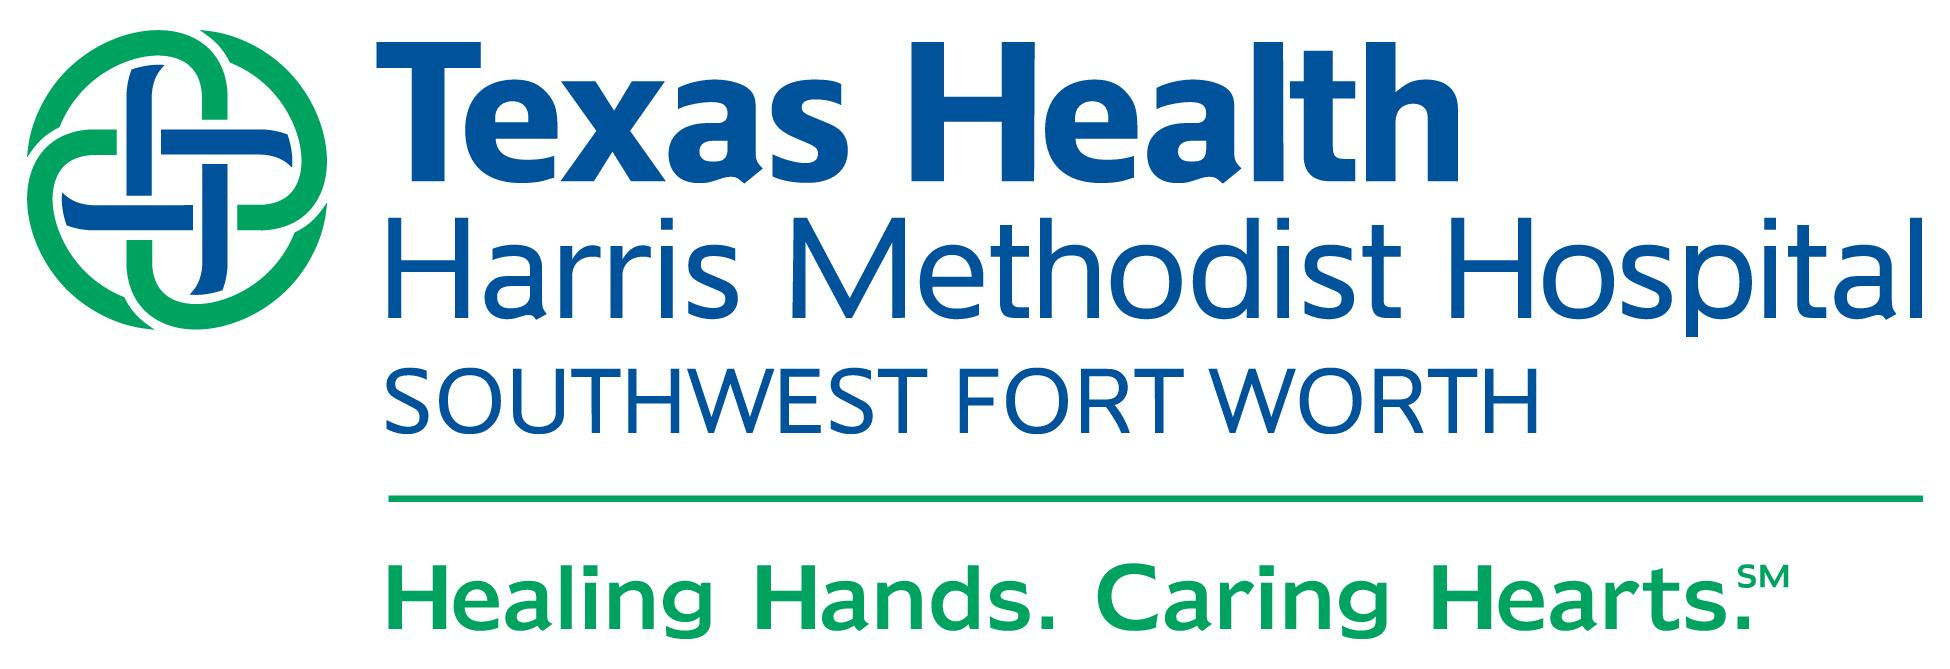 Ob/Gyn physicians needed in Fort Worth, TX | Texas Health